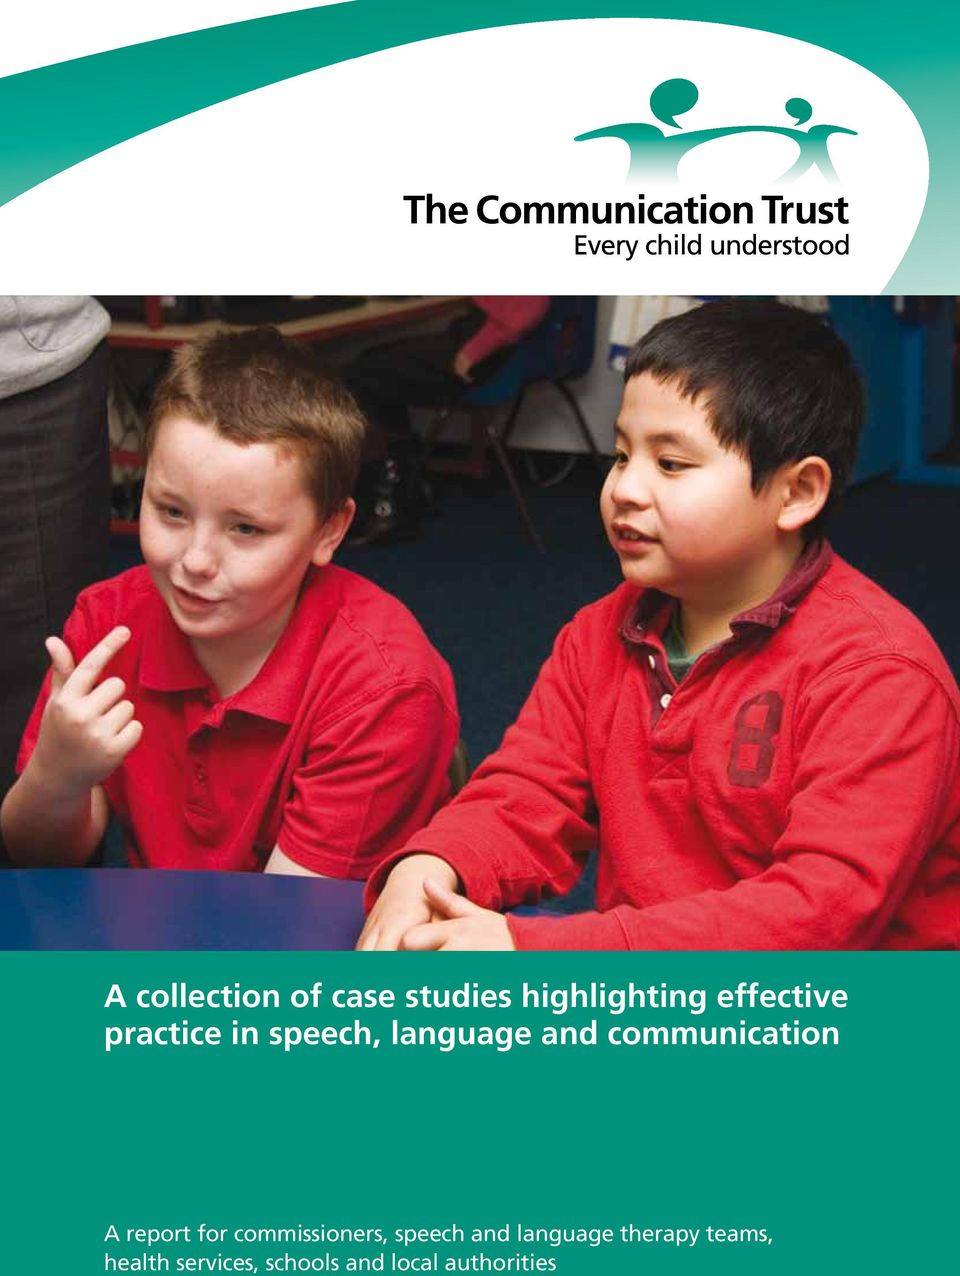 speech and language therapy teams, health services, schools and